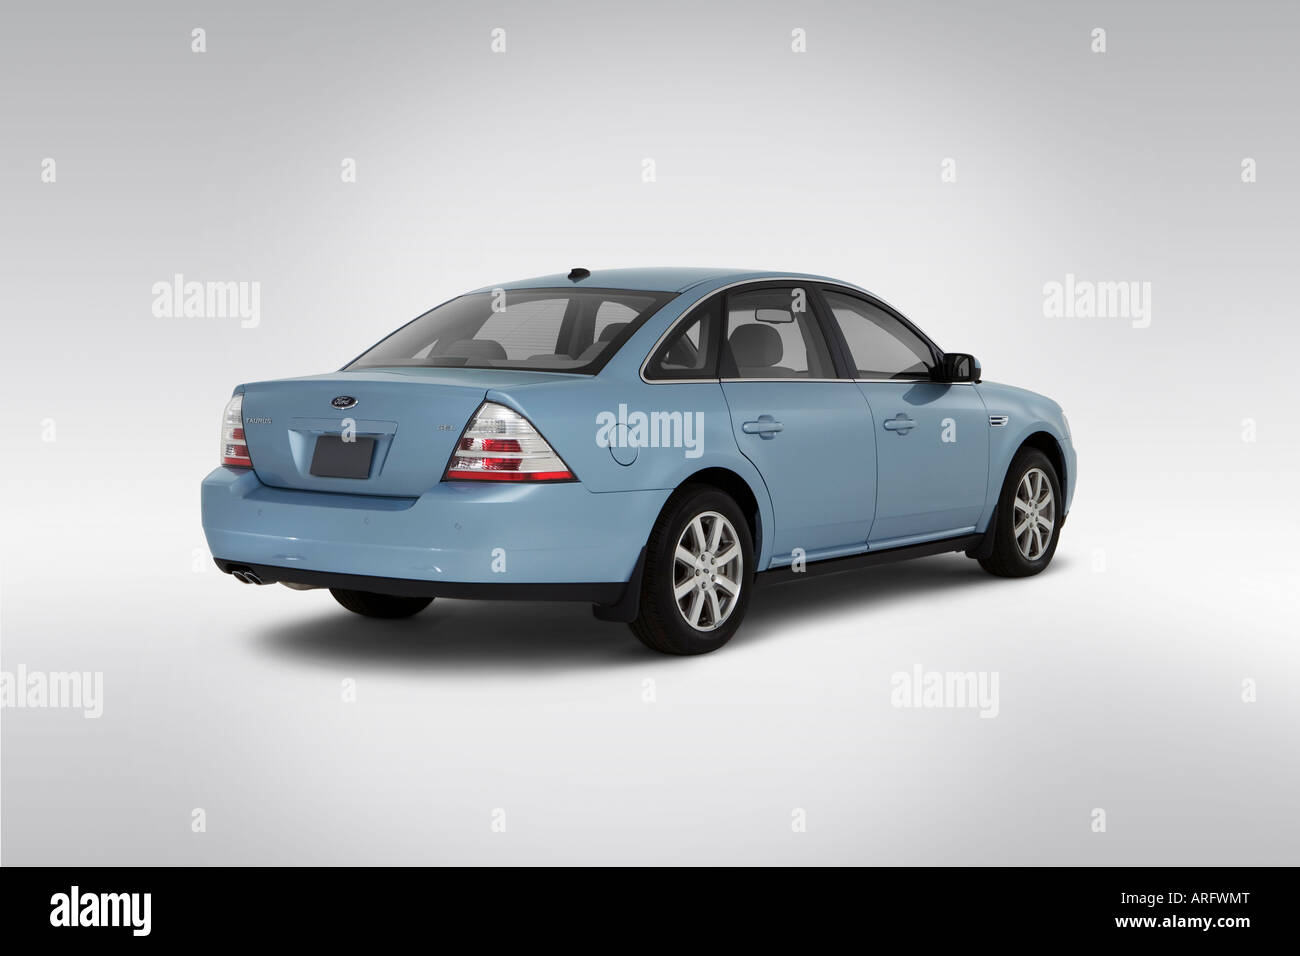 2008 ford taurus sel in blue rear angle view